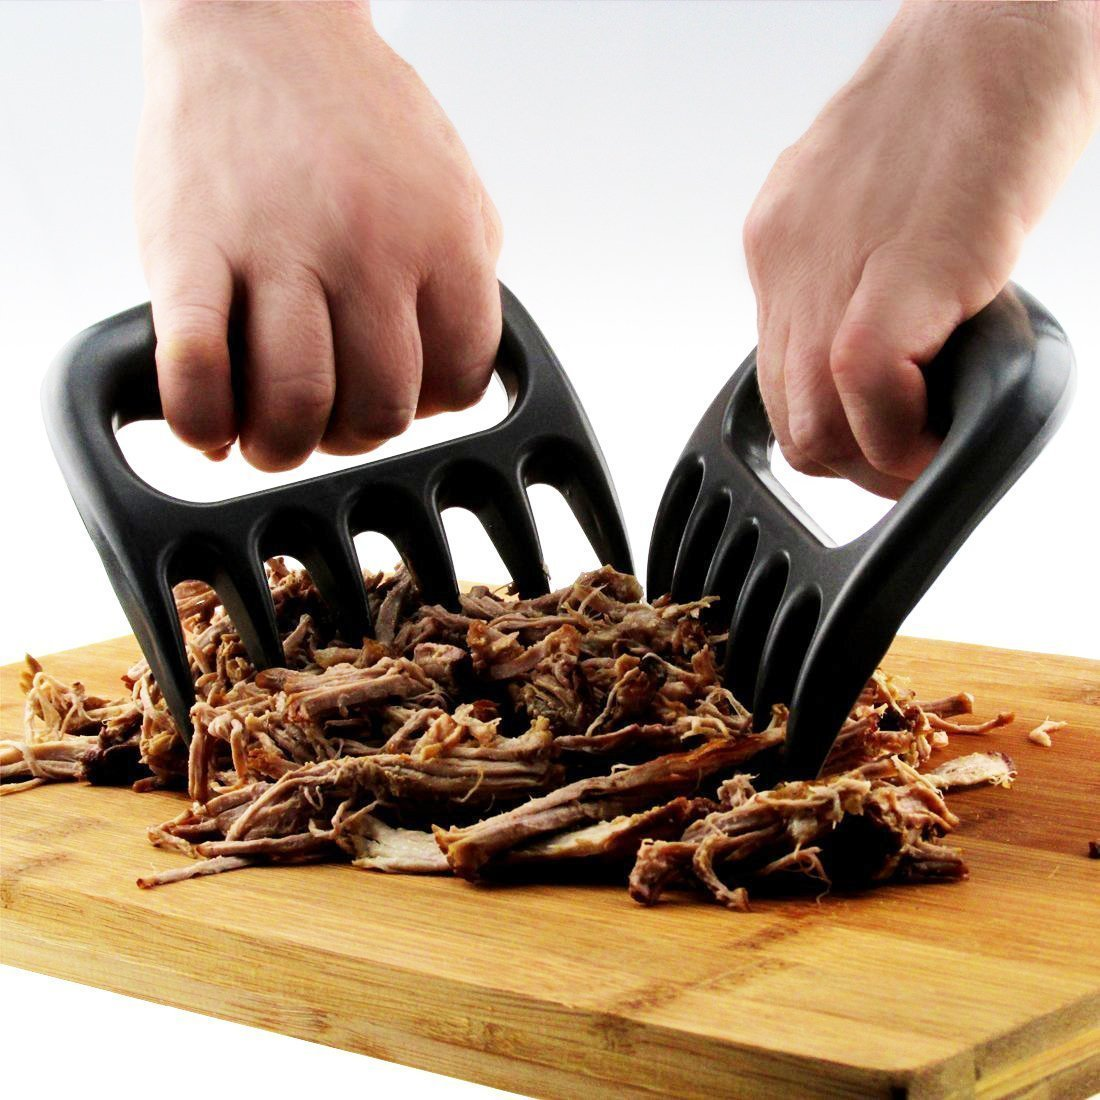 sea-junop 2 Pcs Creative Bear Claw Meat Shredder